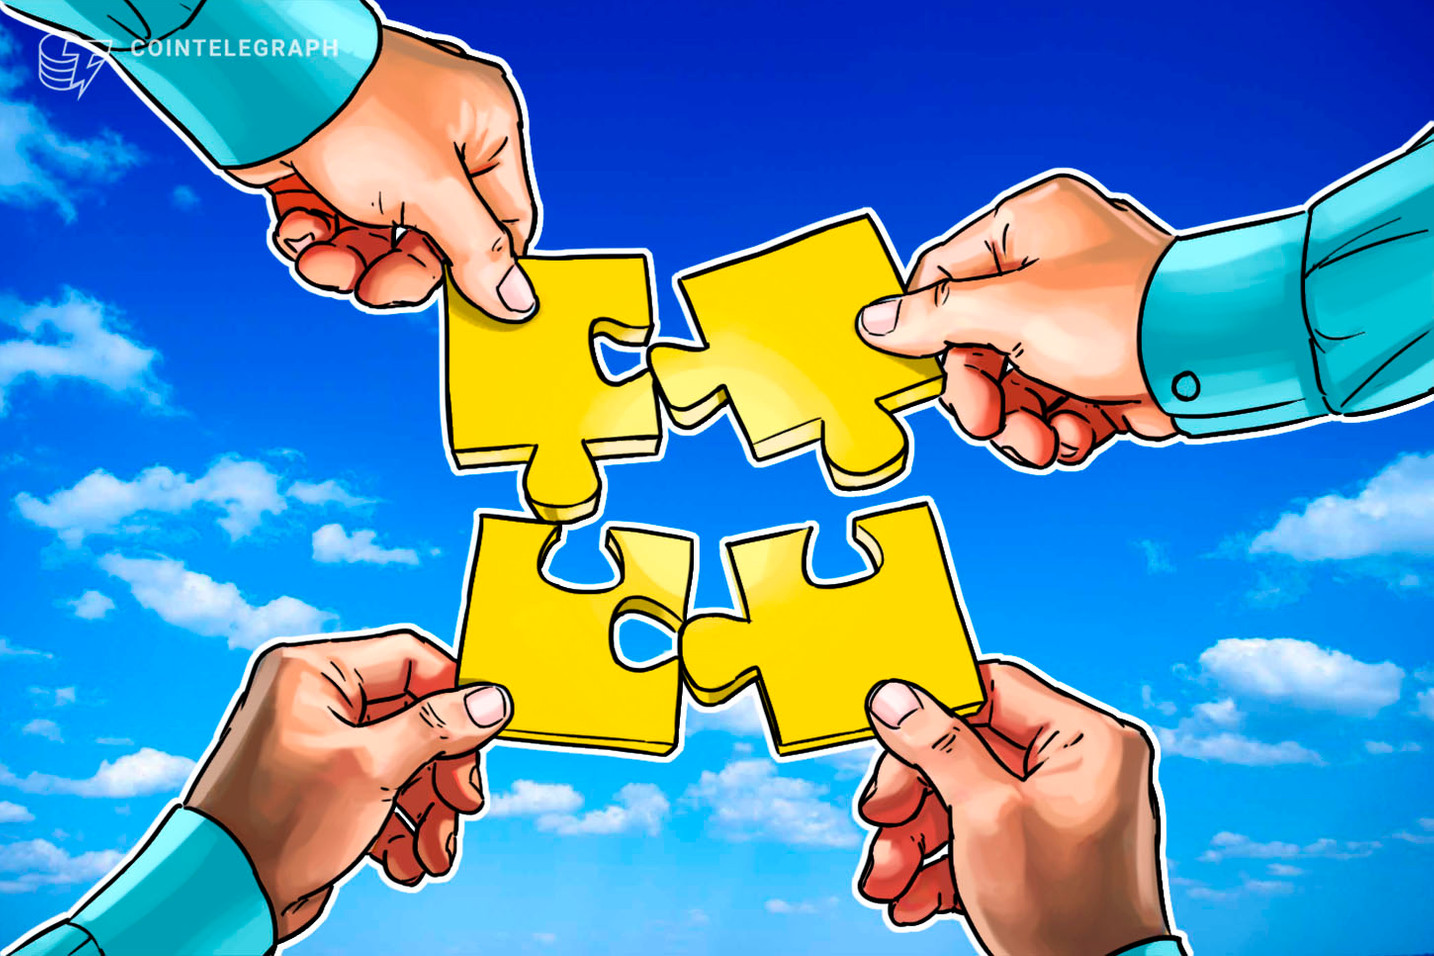 Payment Processor Netpay to Integrate Blockchain-Based Tool: Report